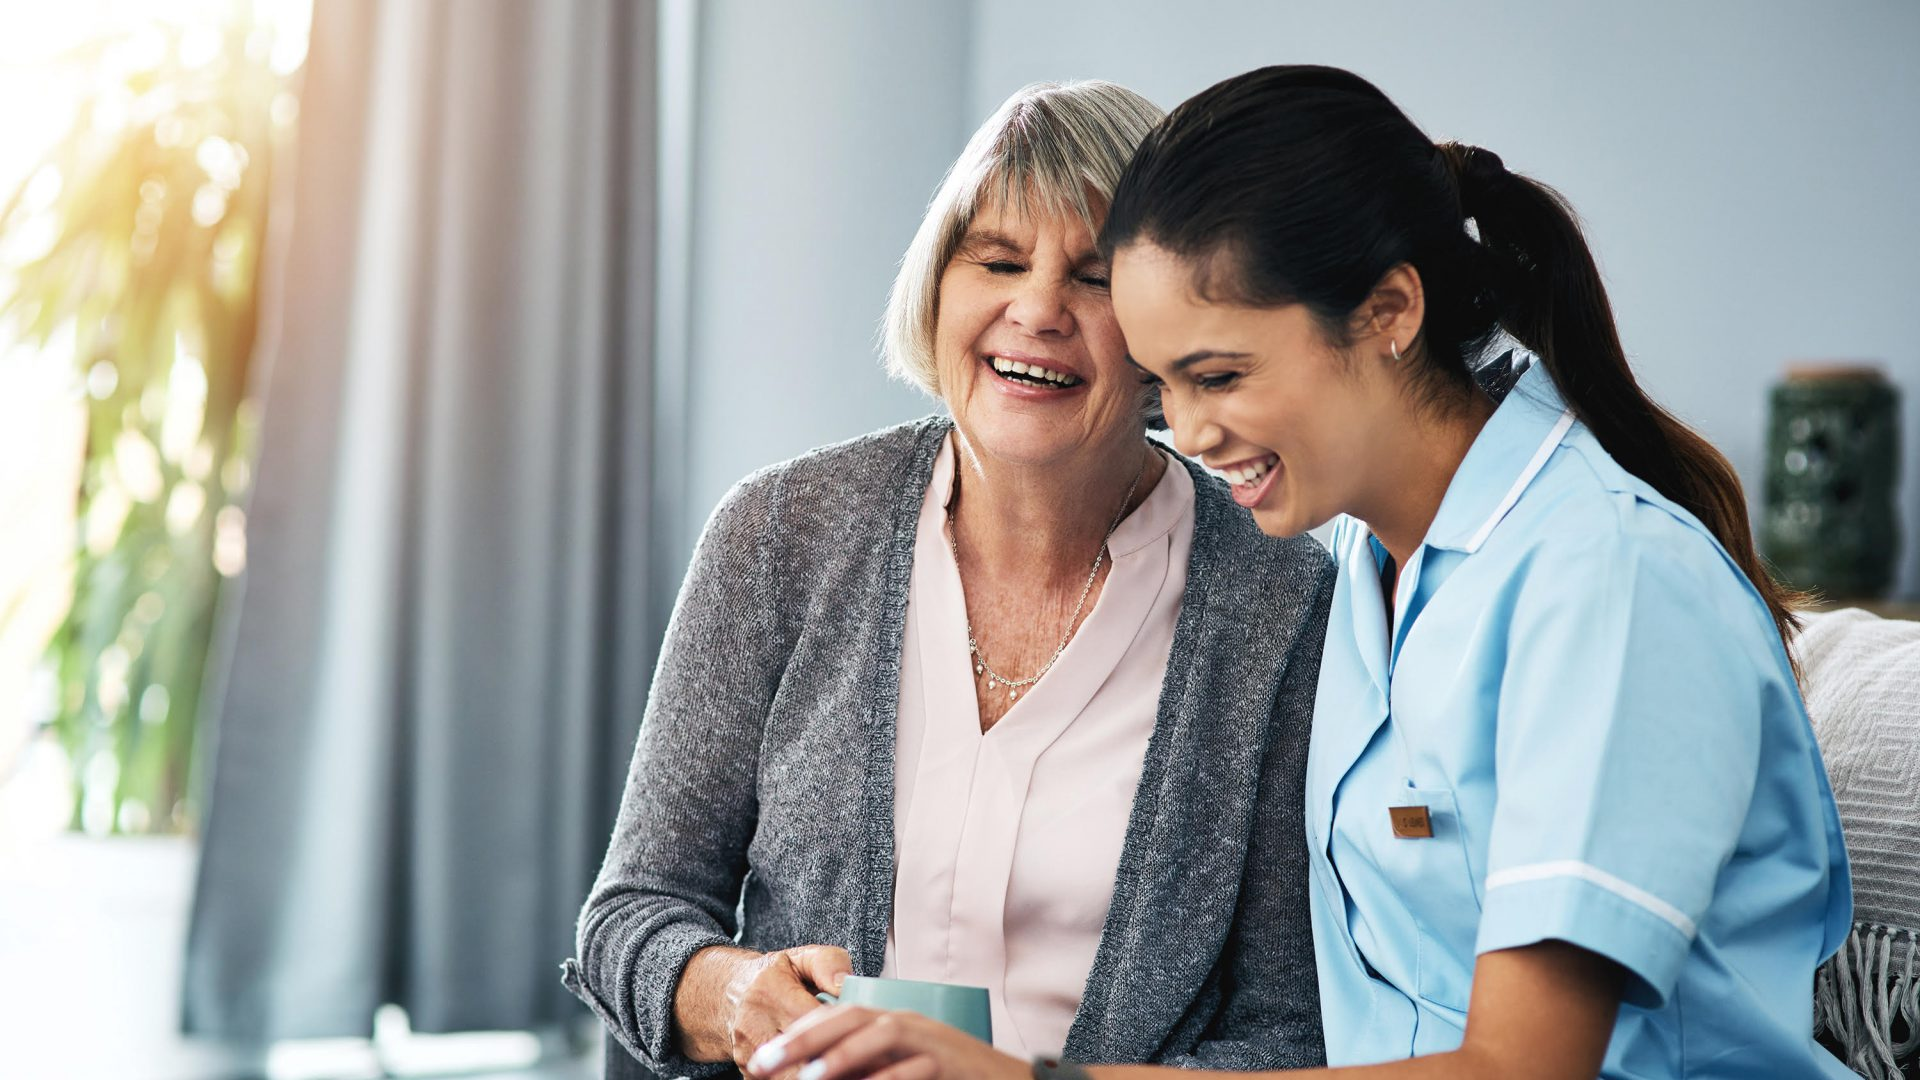 Caregiver speaking with a senior resident